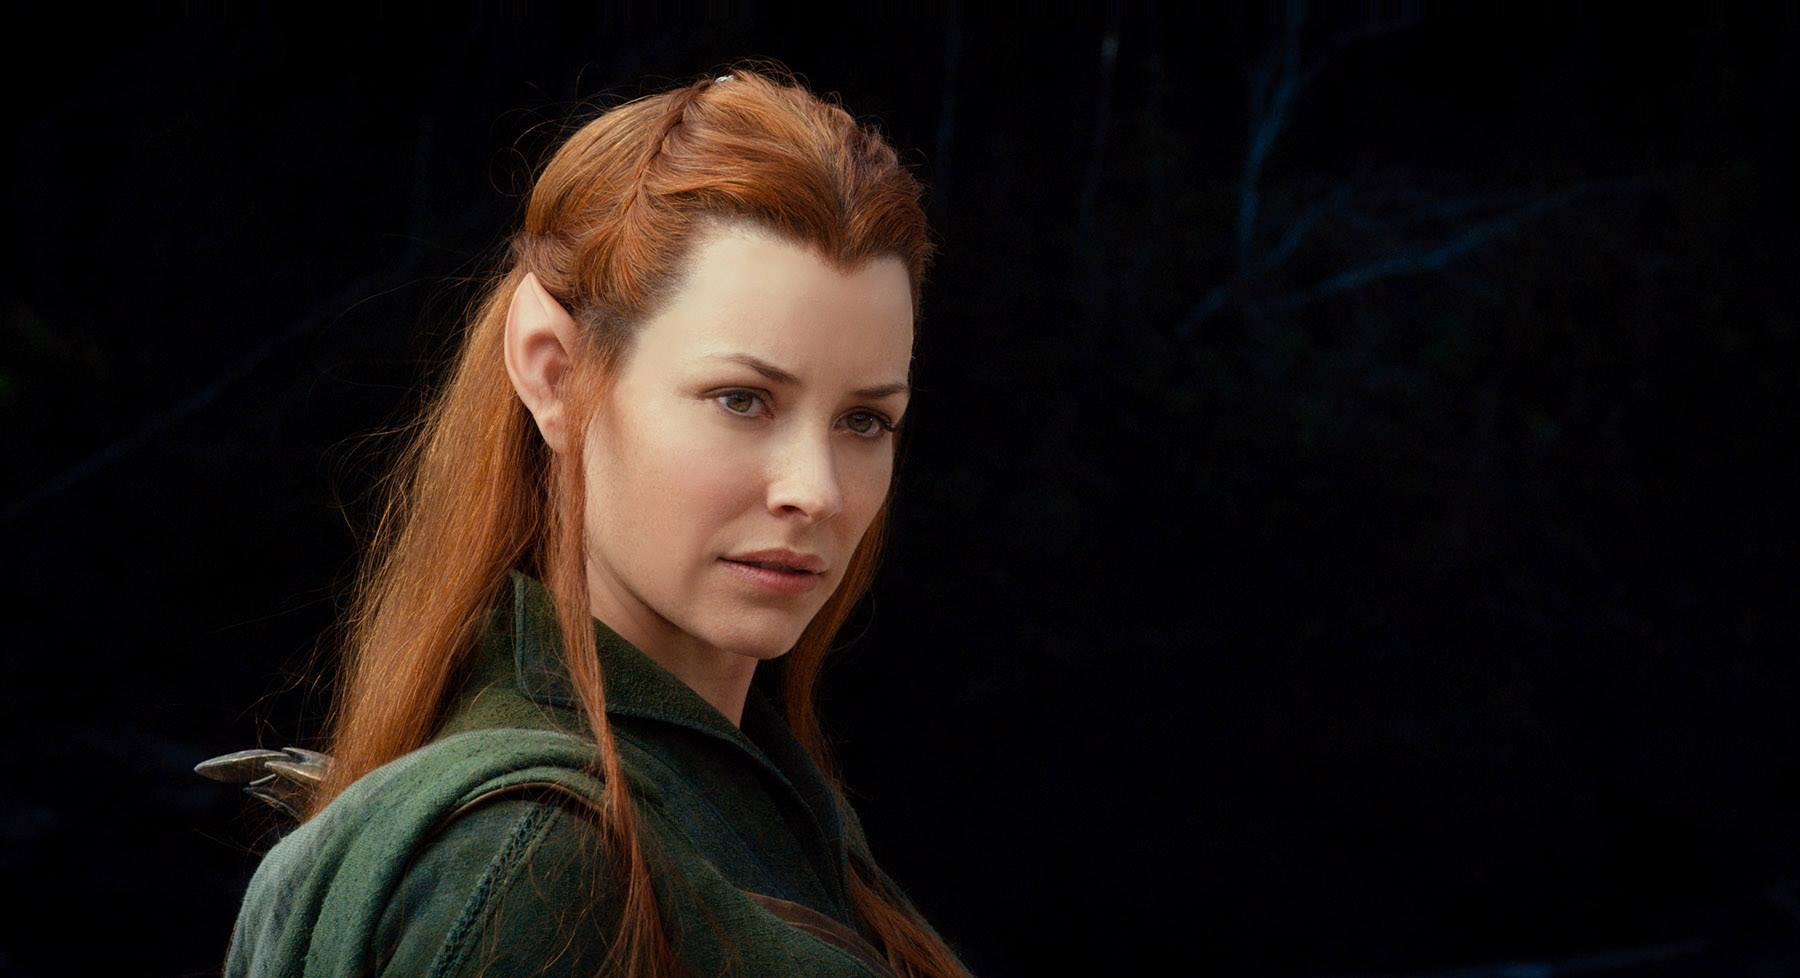 Tauriel images Tauriel HD wallpaper and background photos ...